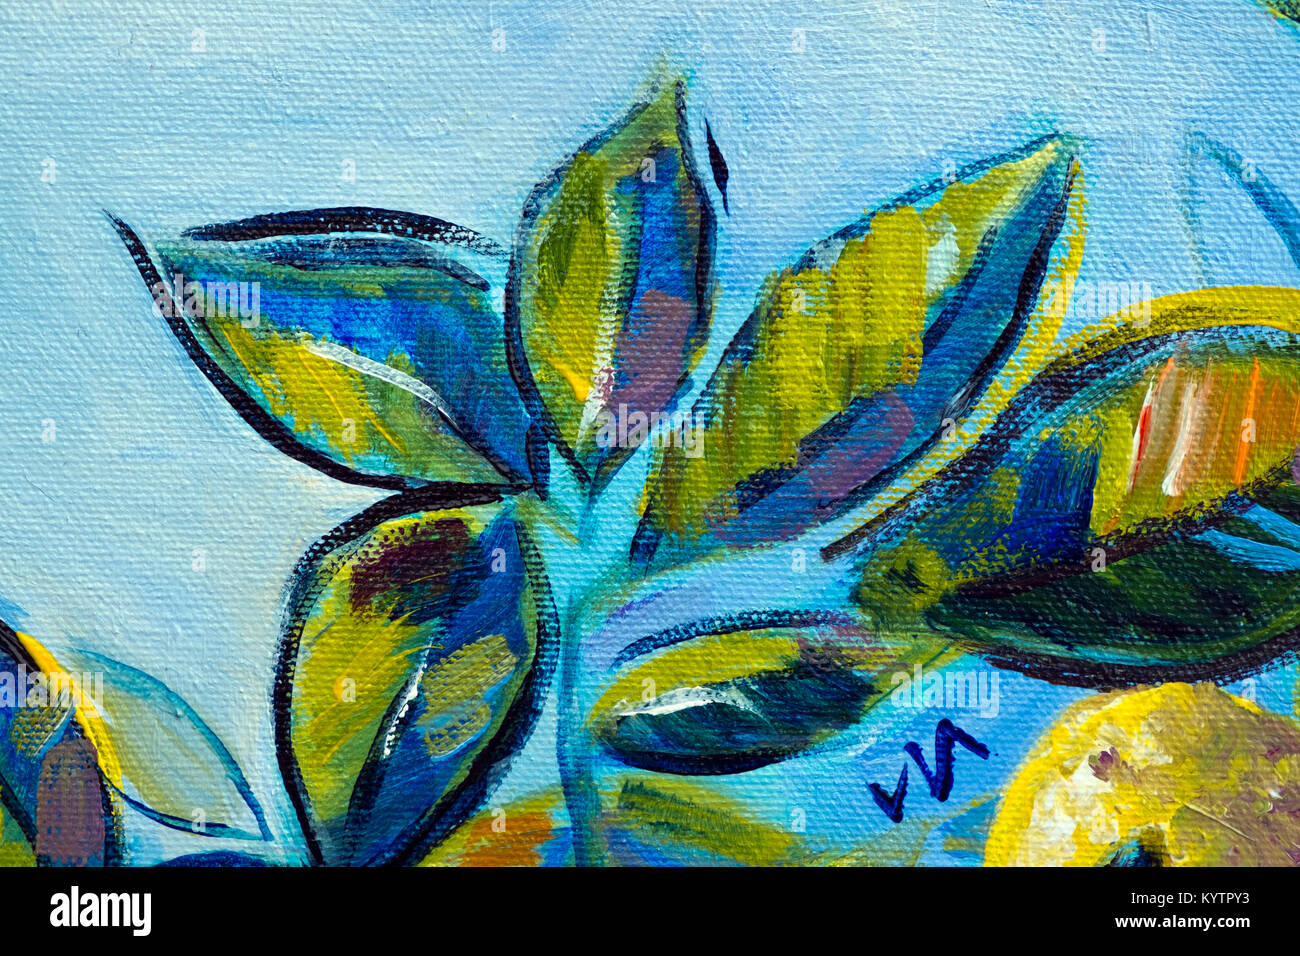 Vibrant Multi Colored Original Oil Painting Close Up Detail Showing Brushwork And Canvas Textures